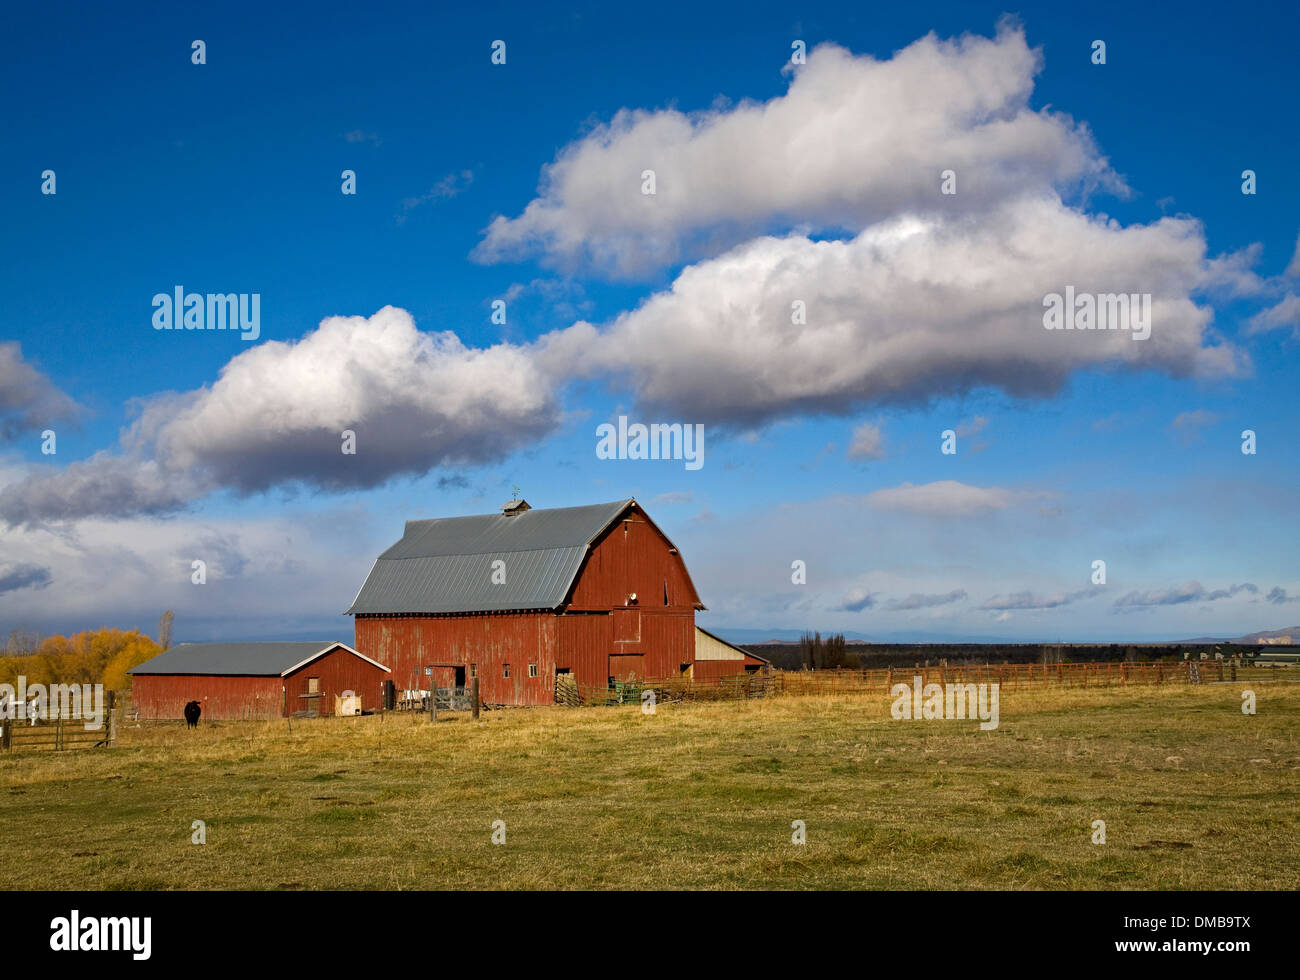 A red barn under early winter clouds near Powell Butte, oregon - Stock Image